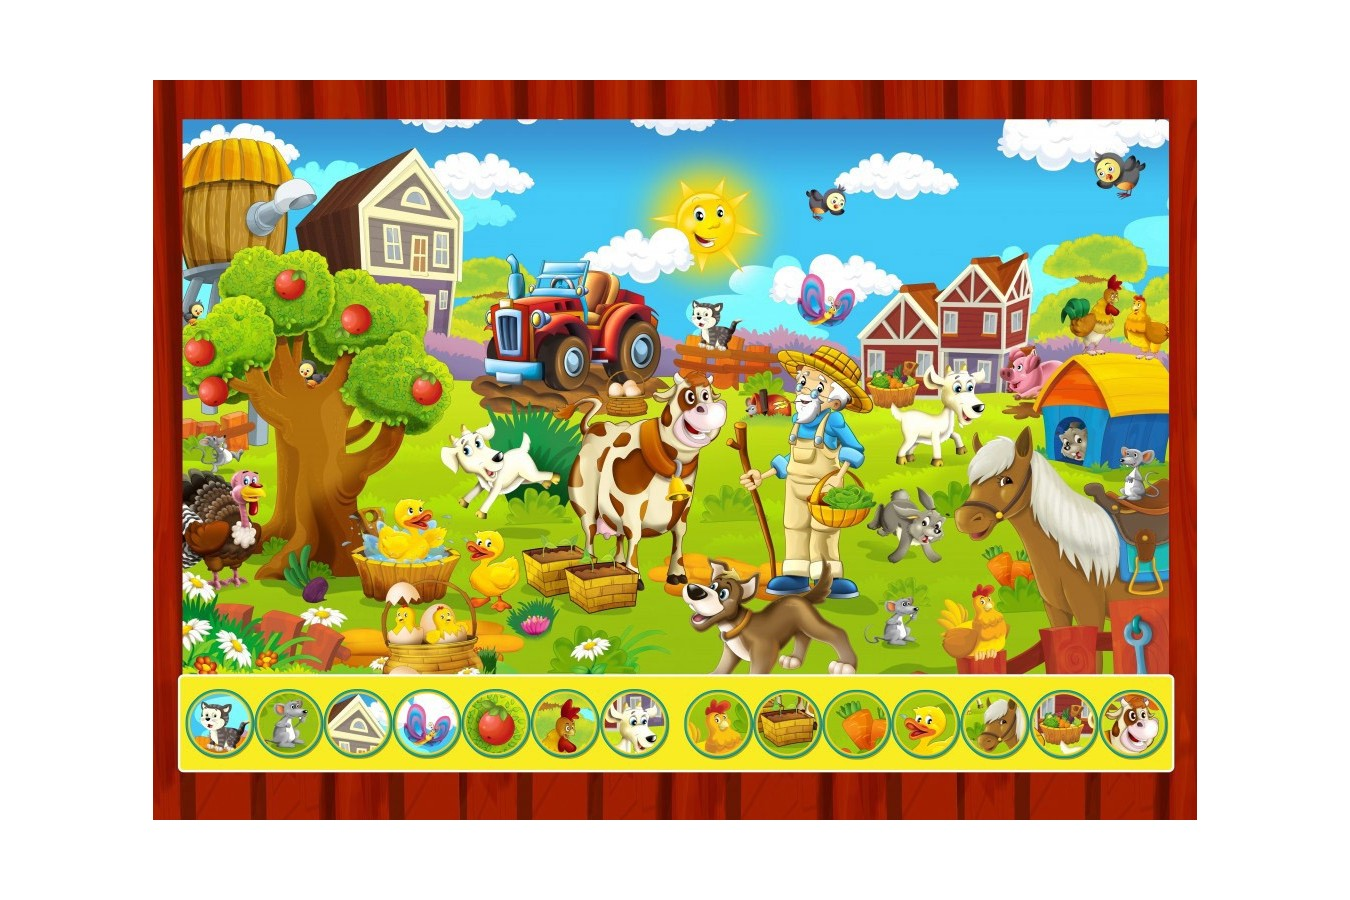 Puzzle Bluebird - Search and Find - The Toy Factory, 100 piese (70349) imagine